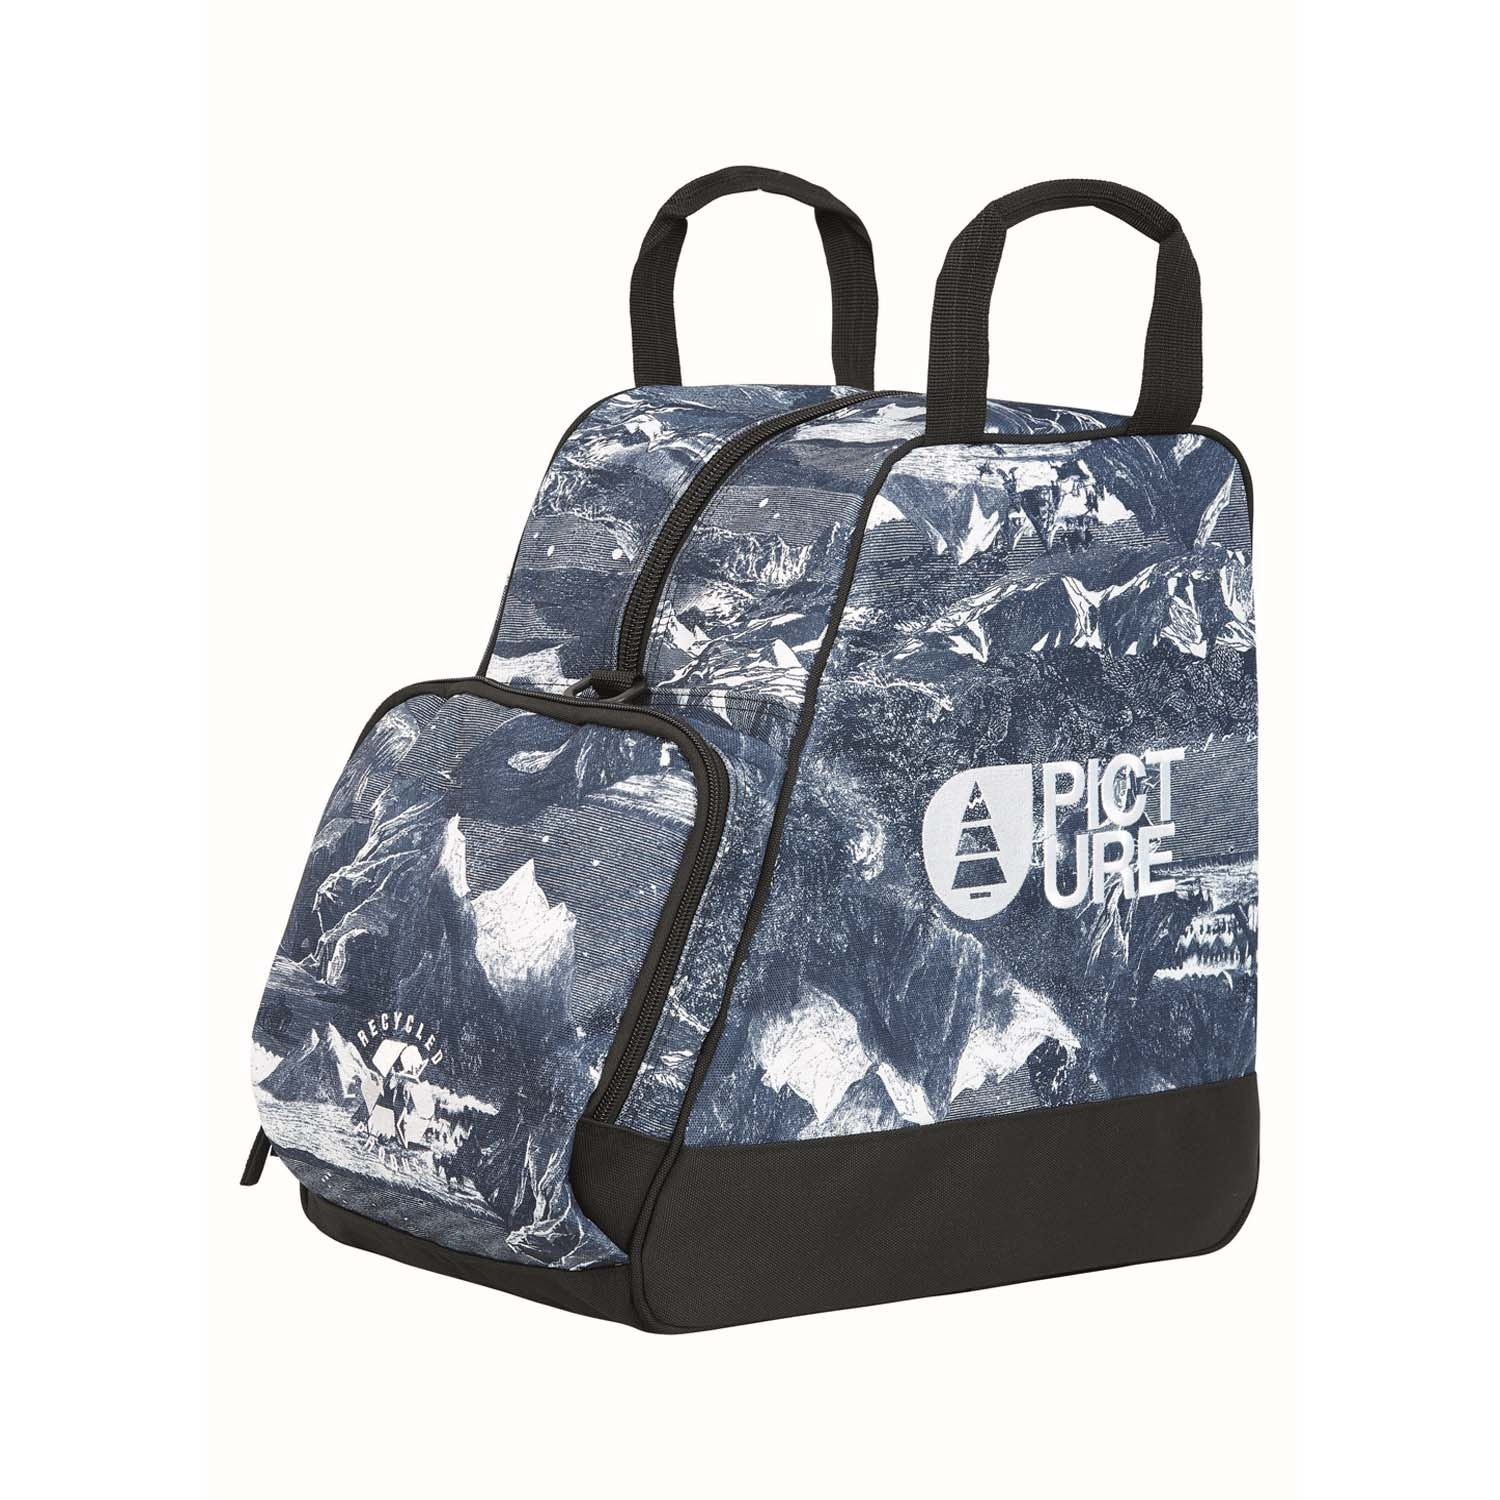 Picture Shoes Bag Imaginery World Print 2021